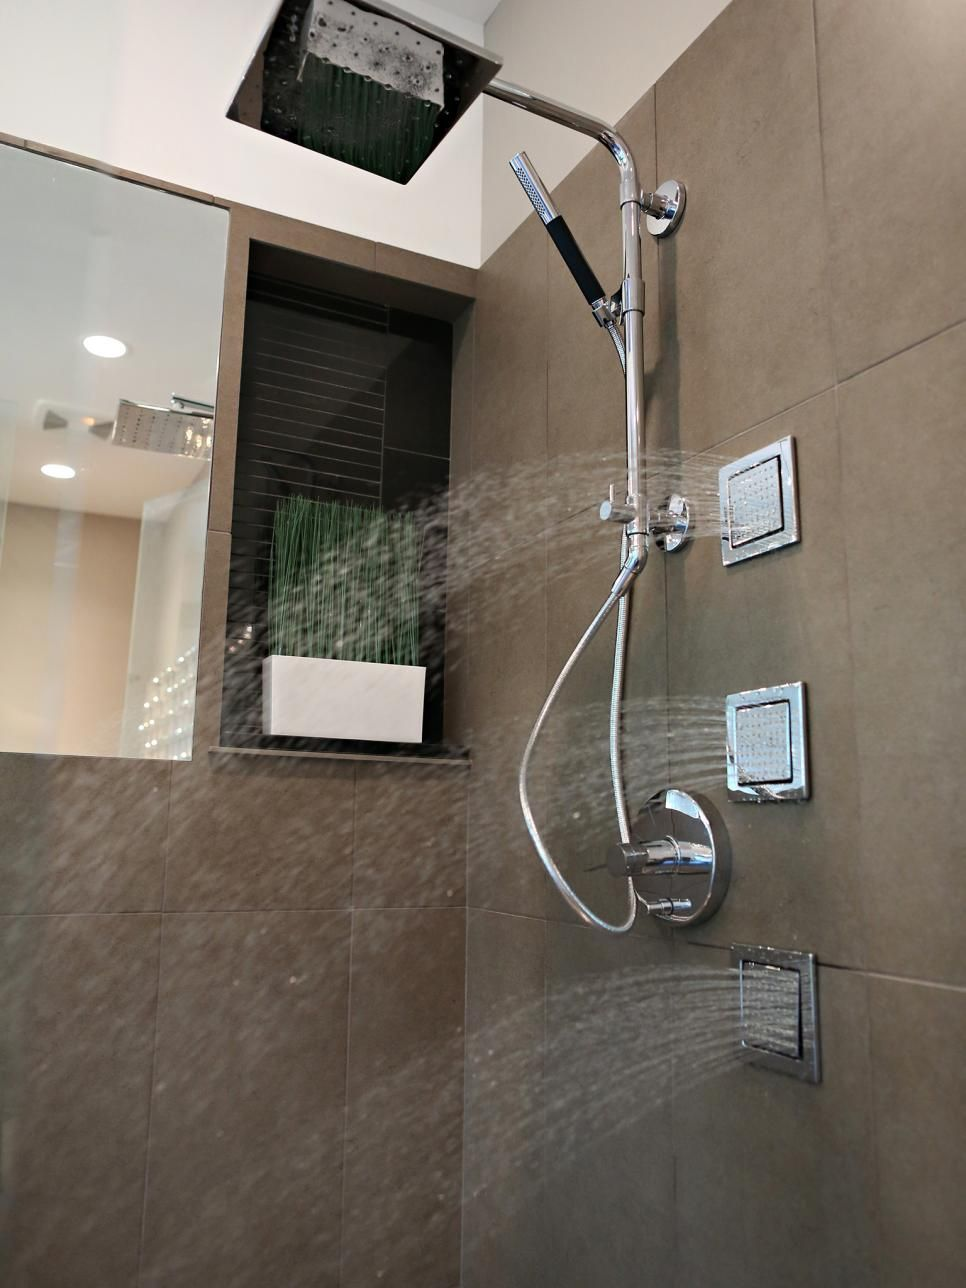 This Kohler Standup Shower Features Three Body Sprayers And One